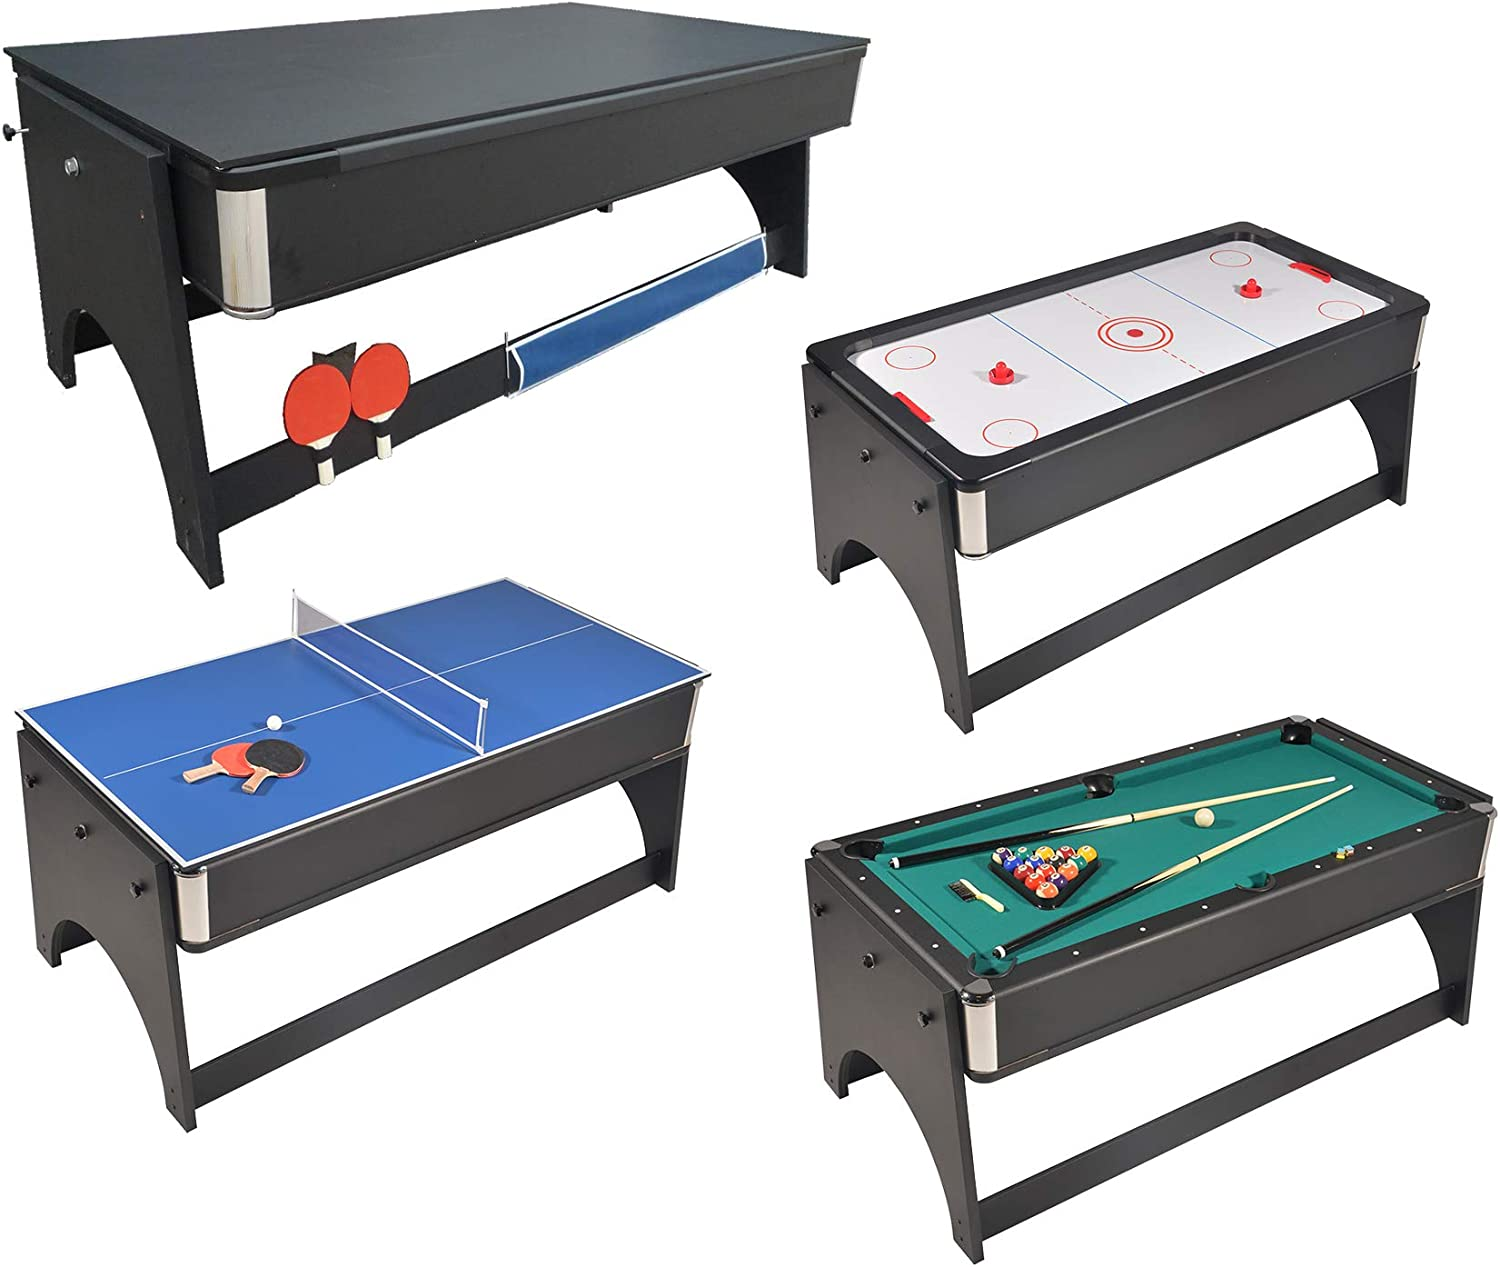 Mesa de juegos 4 en 1 plegable Air Hockey – Ping Pong – Billar con ...